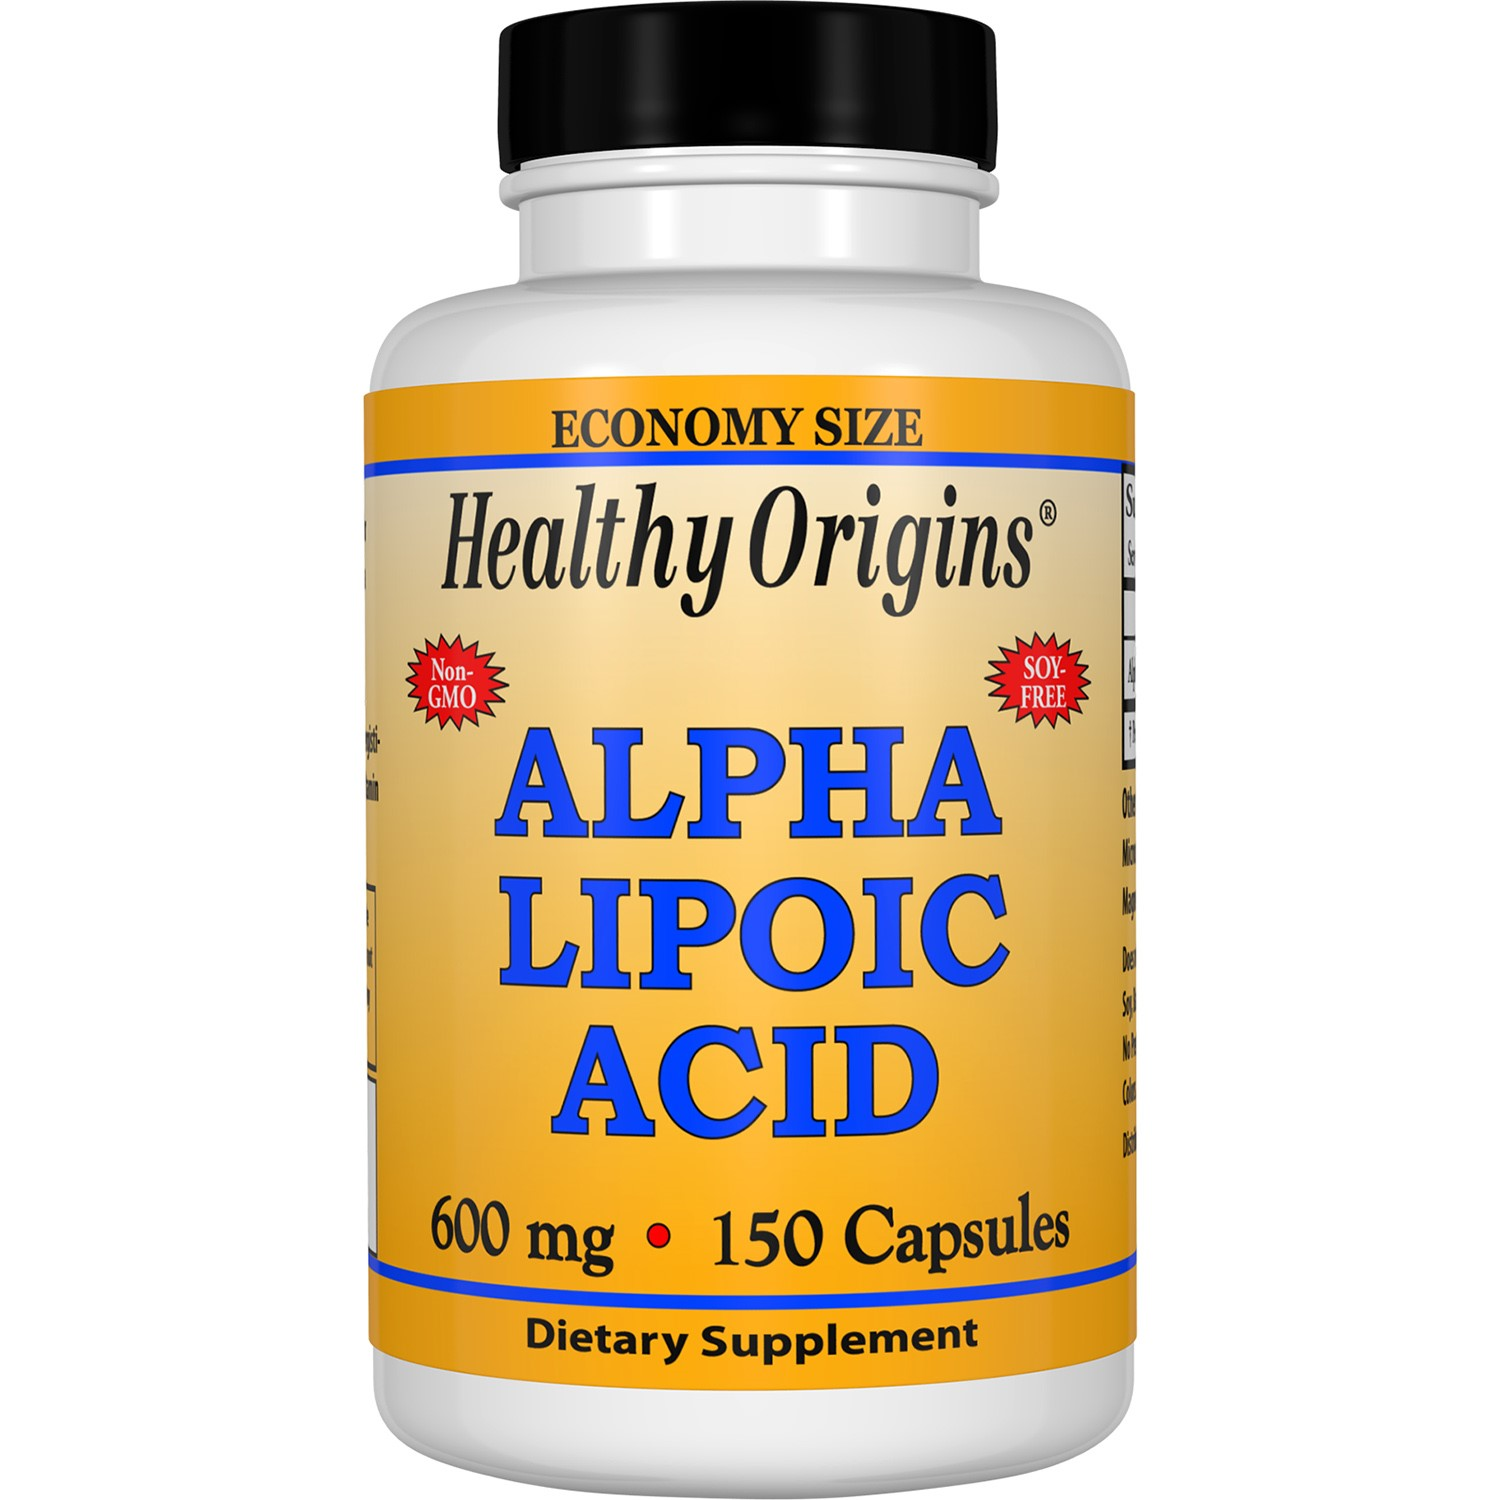 Healthy Origins Alpha Lipoic Acid 600 mg Capsules, 150 Ct